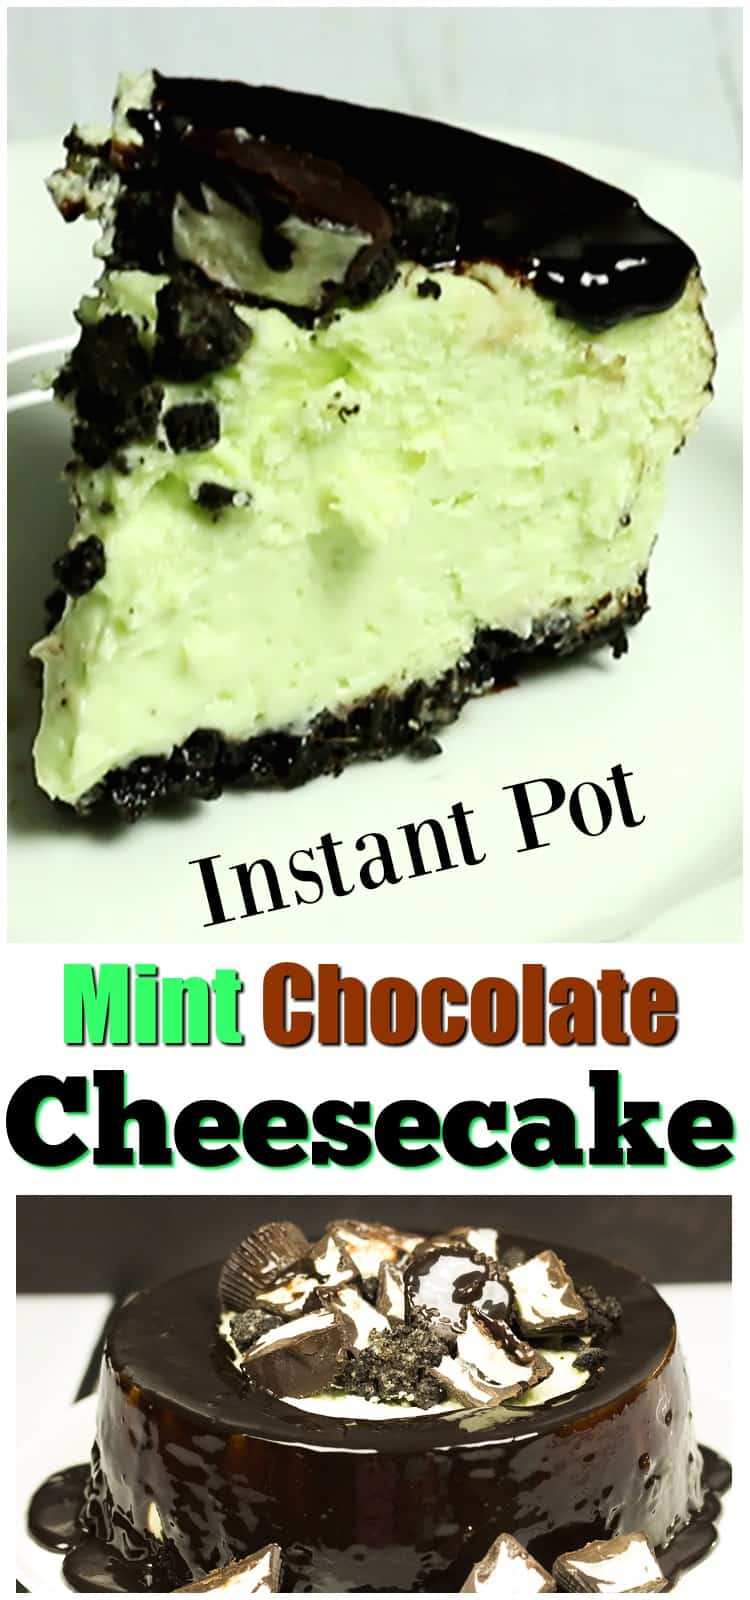 Mint Chocolate Instant Pot Cheesecake image of cheesecake slice and whole cheesecake for Pinterest